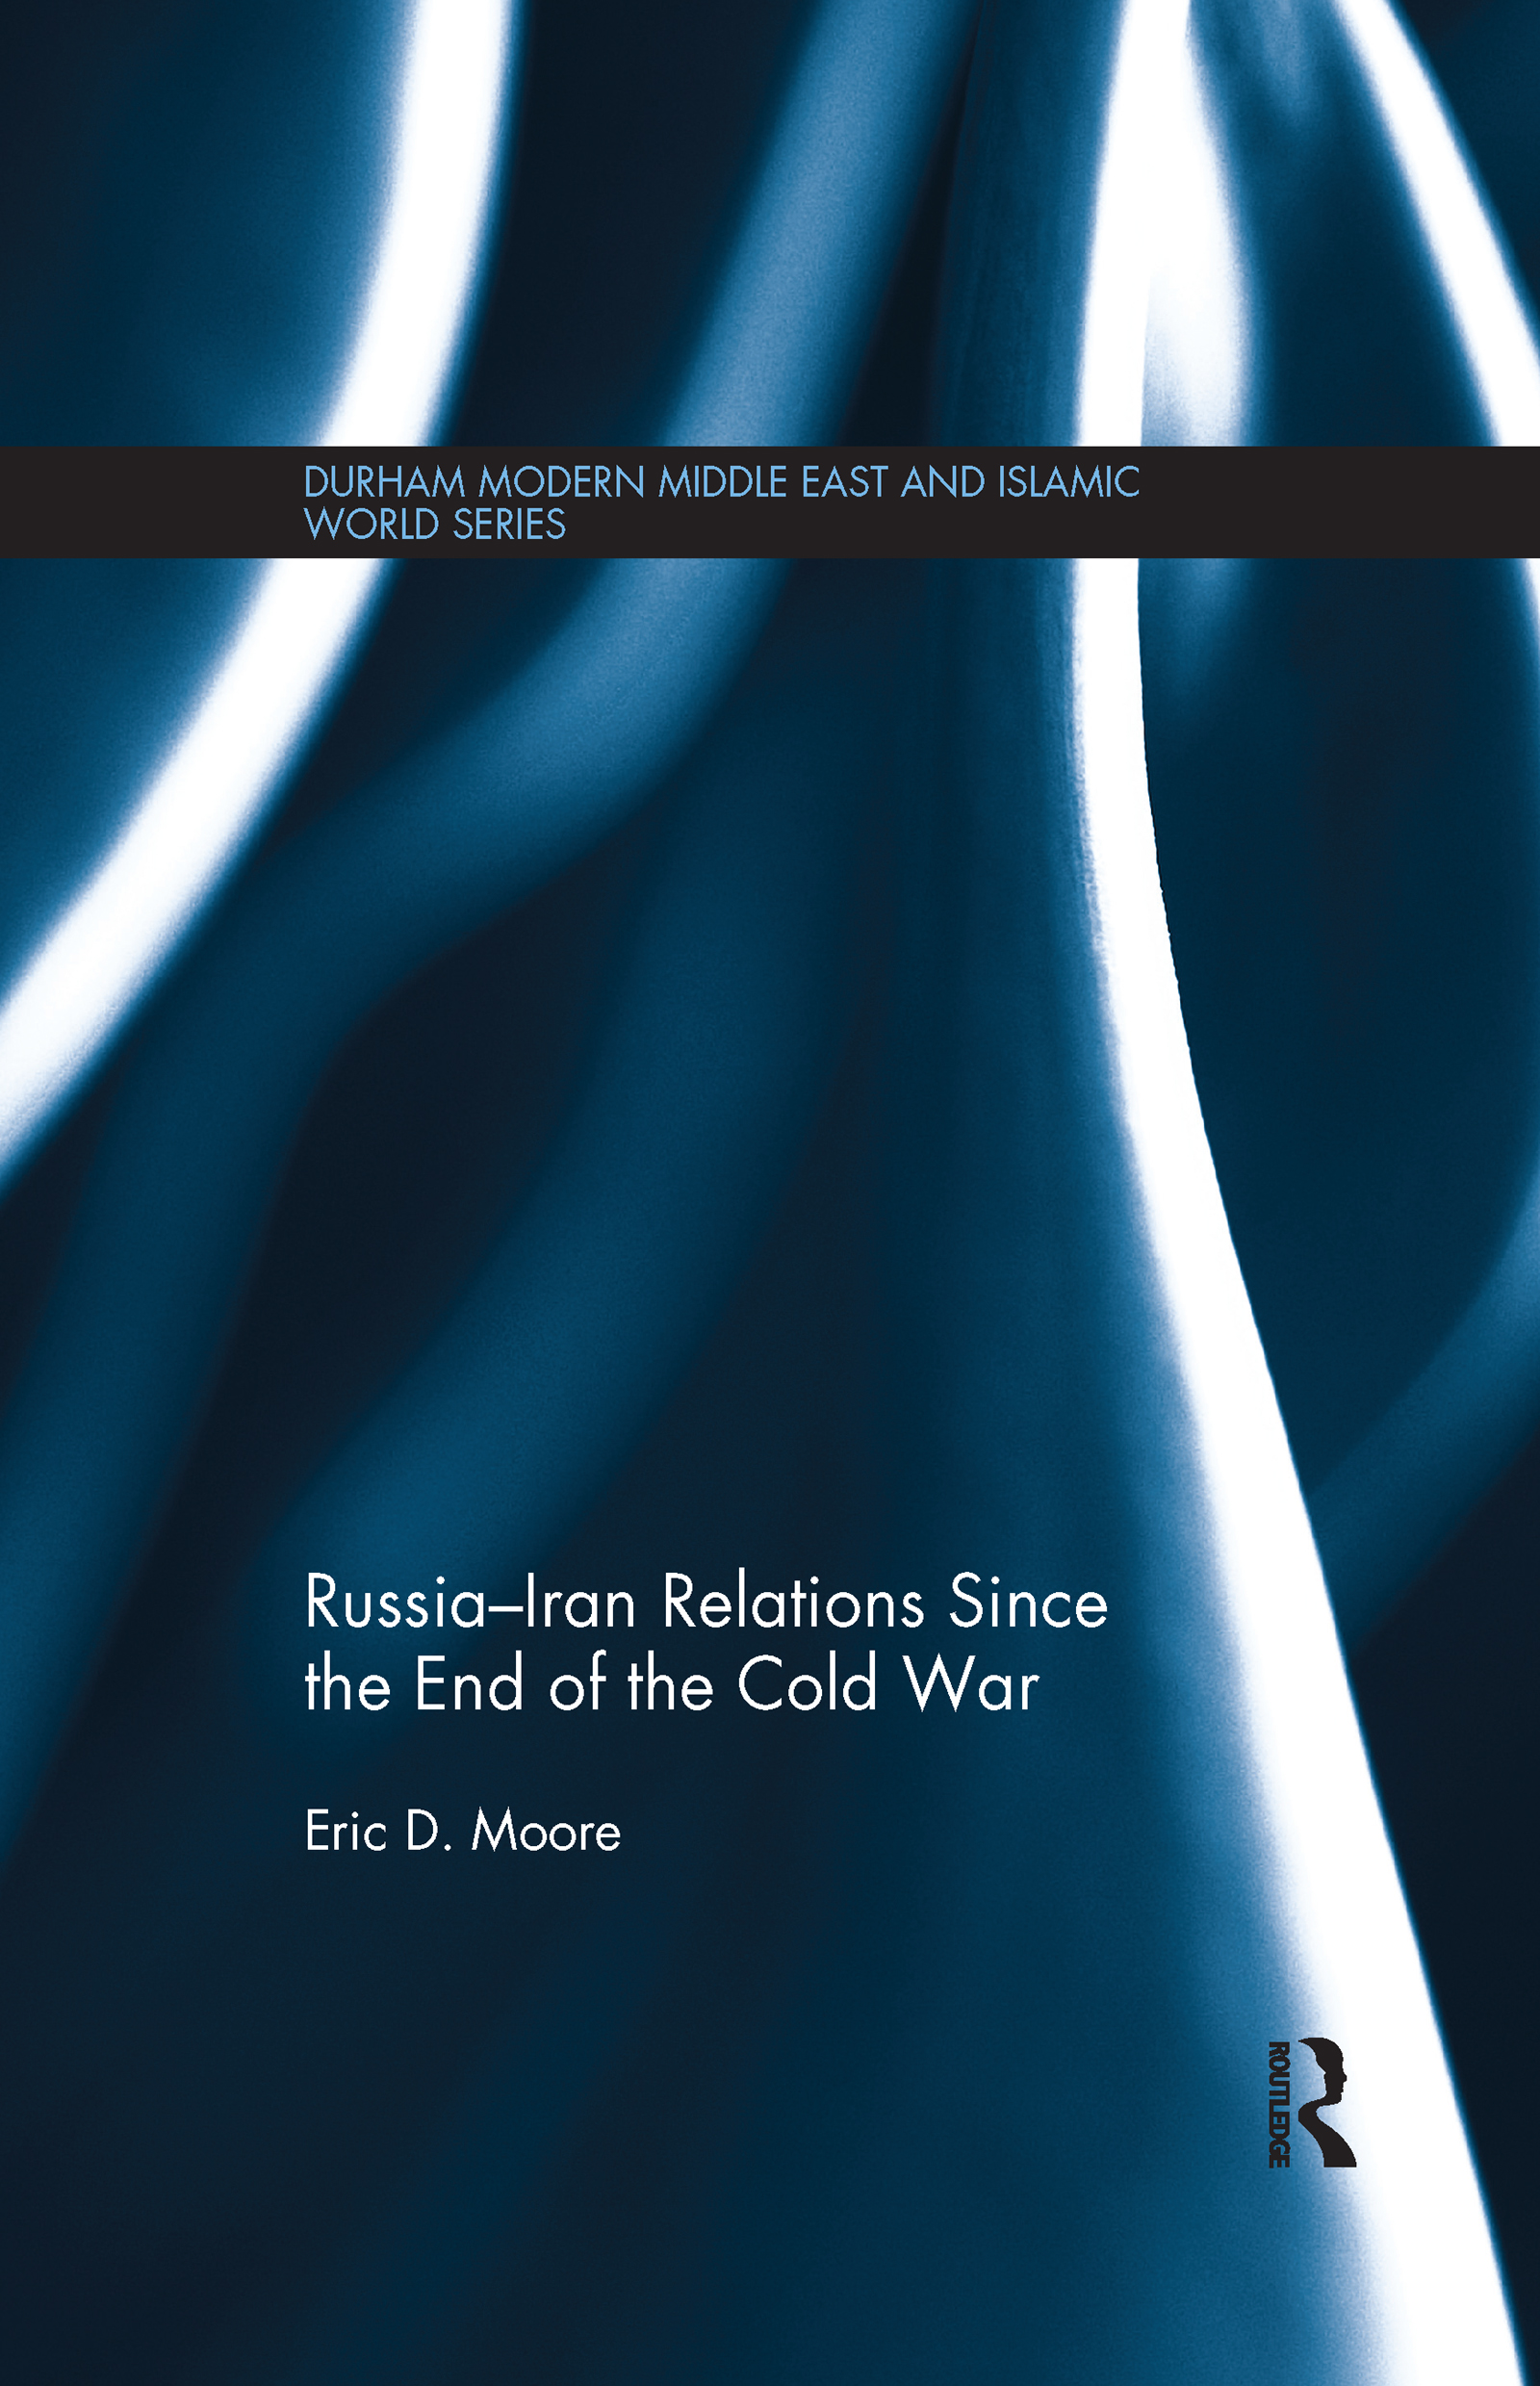 Russia-Iran Relations Since the End of the Cold War